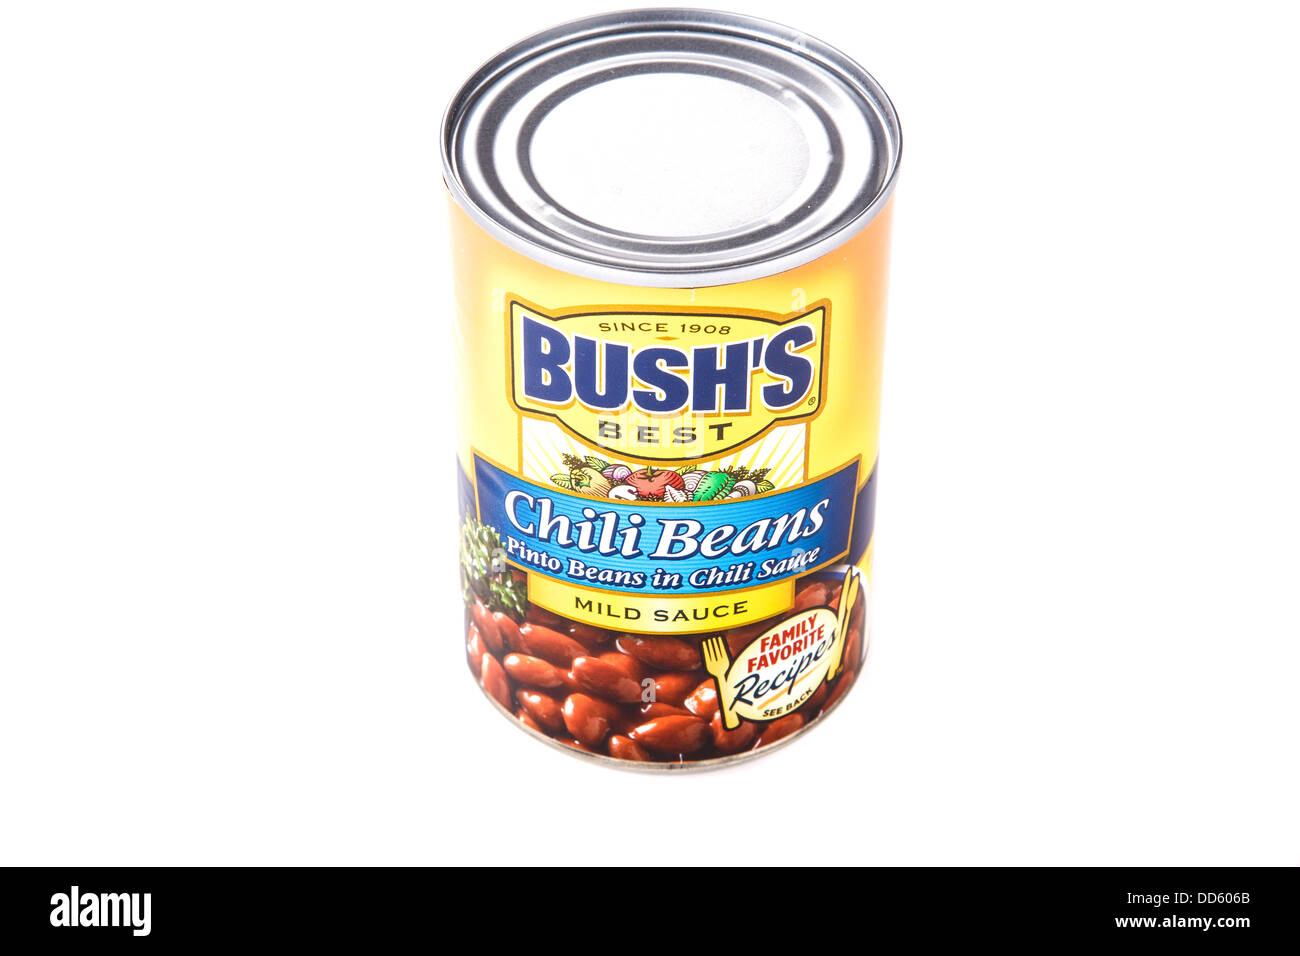 A can of Bush's Chili Beans on White Background - Stock Image